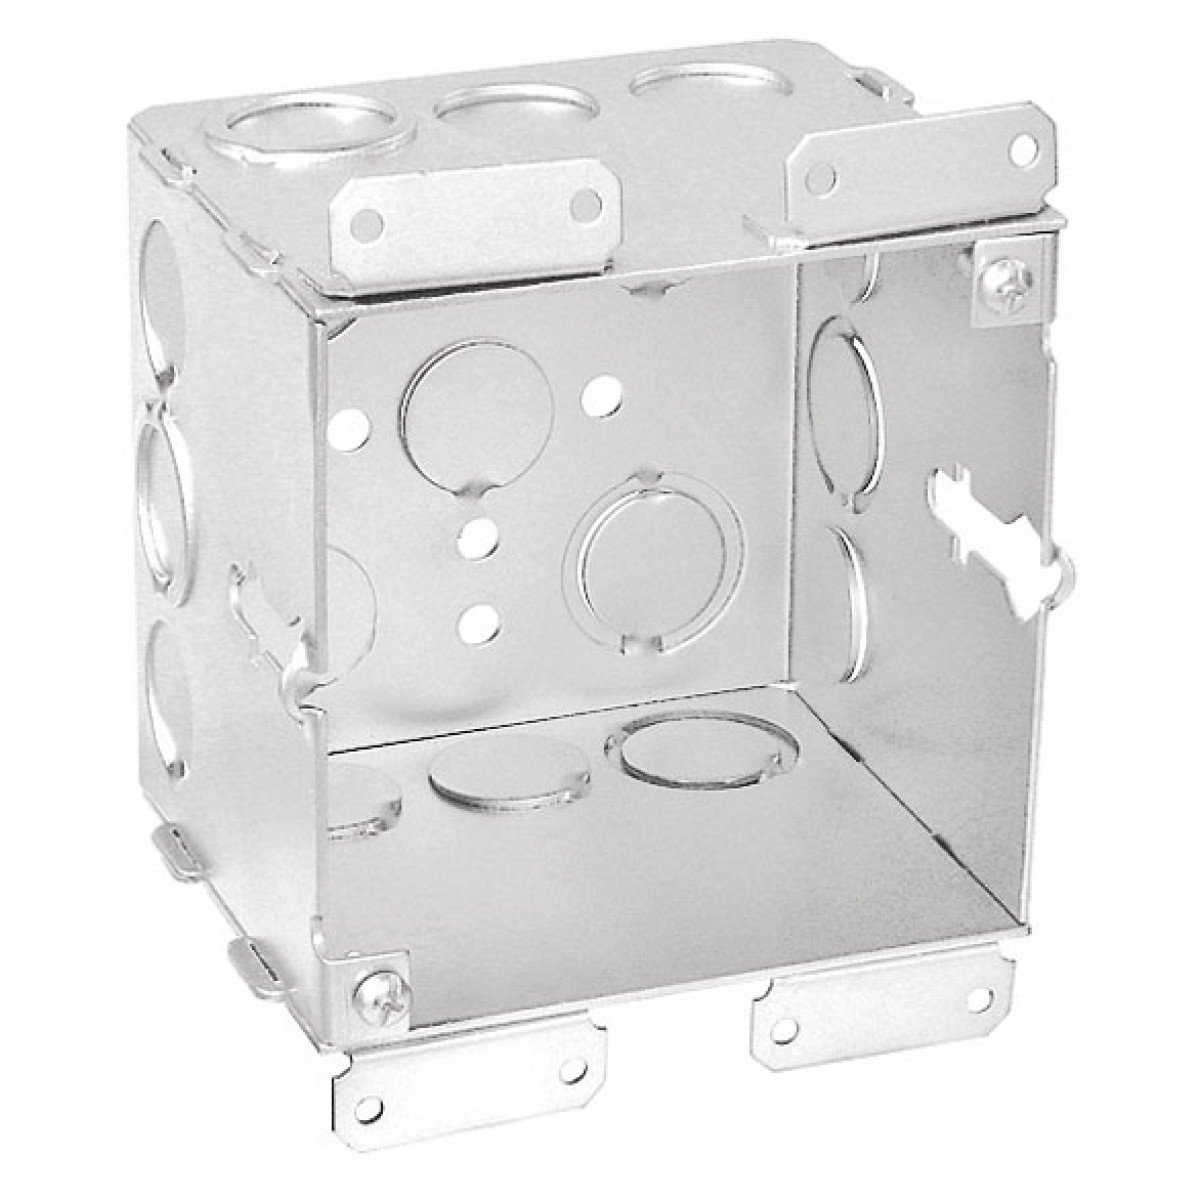 1 Pc, 4'' Square, 3-1/2 In. Extra Deep Old Work Junction Box, (8) 1/2 In & (4) 1/2-3/4 In. Side Knockouts; (3) 1/2 In & (2) 1/2-3/4 In. Bottom Knockouts, Zinc Plated Steel